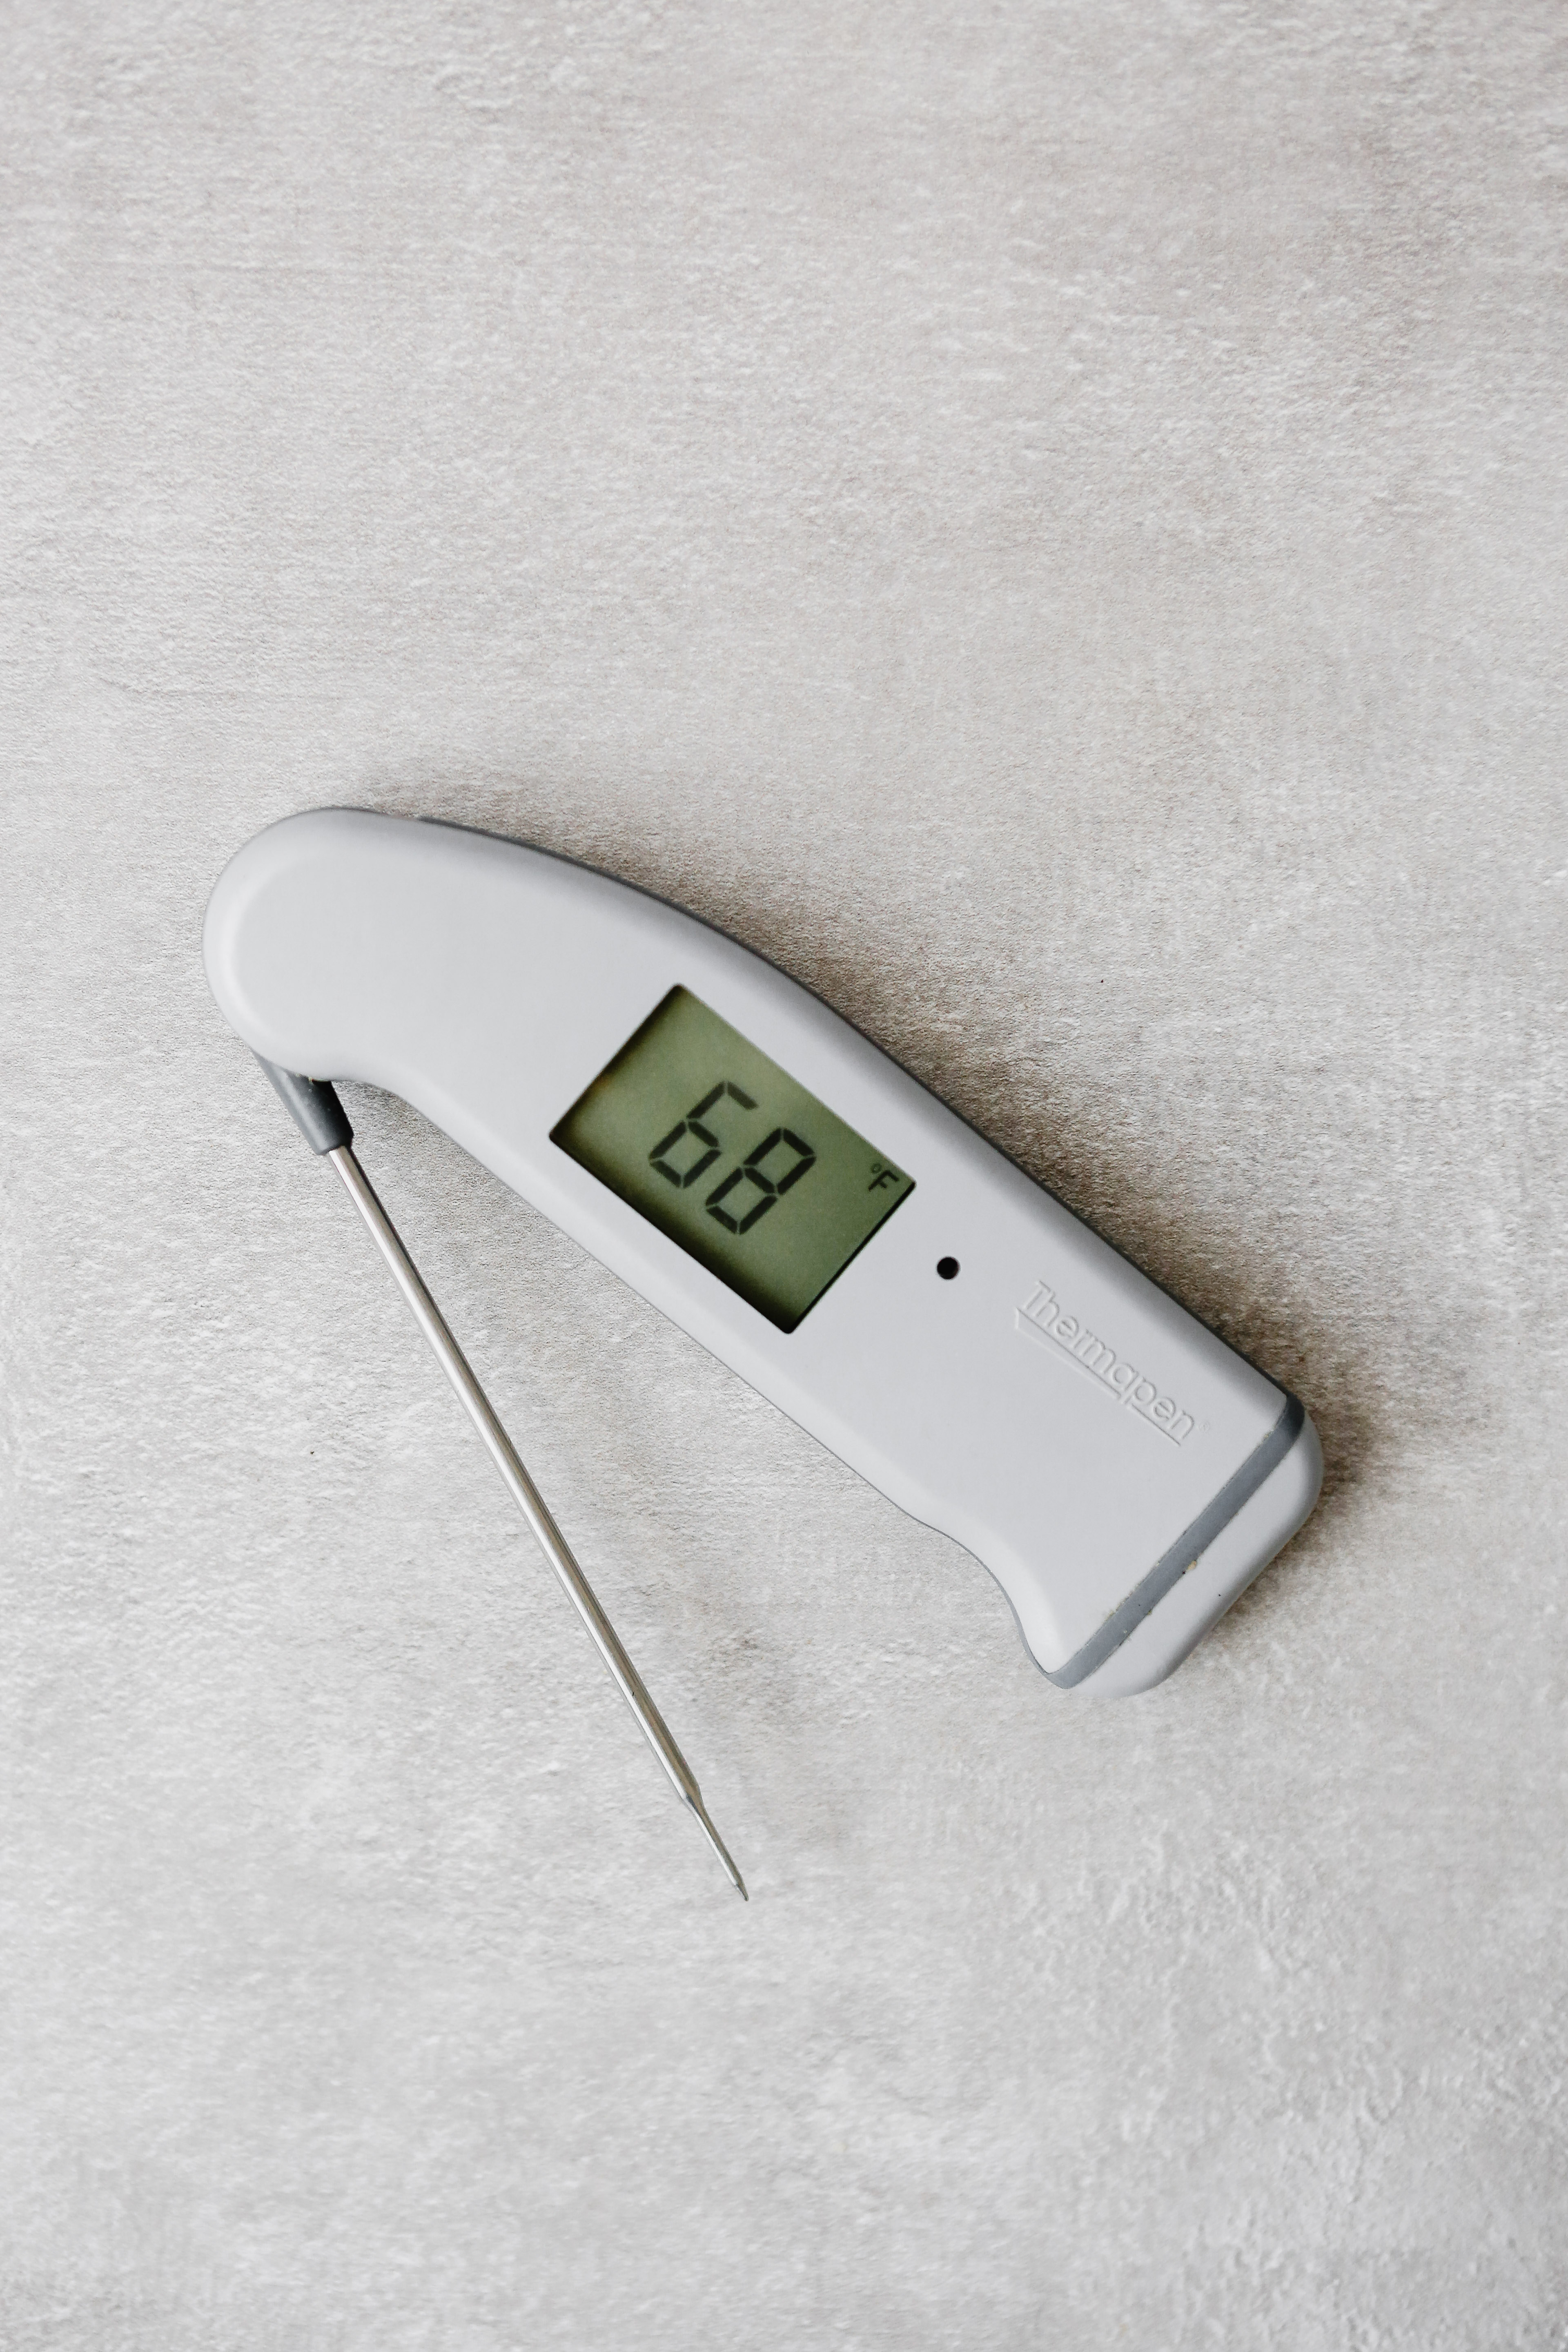 Photograph of a Thermapen thermometer on a gray table